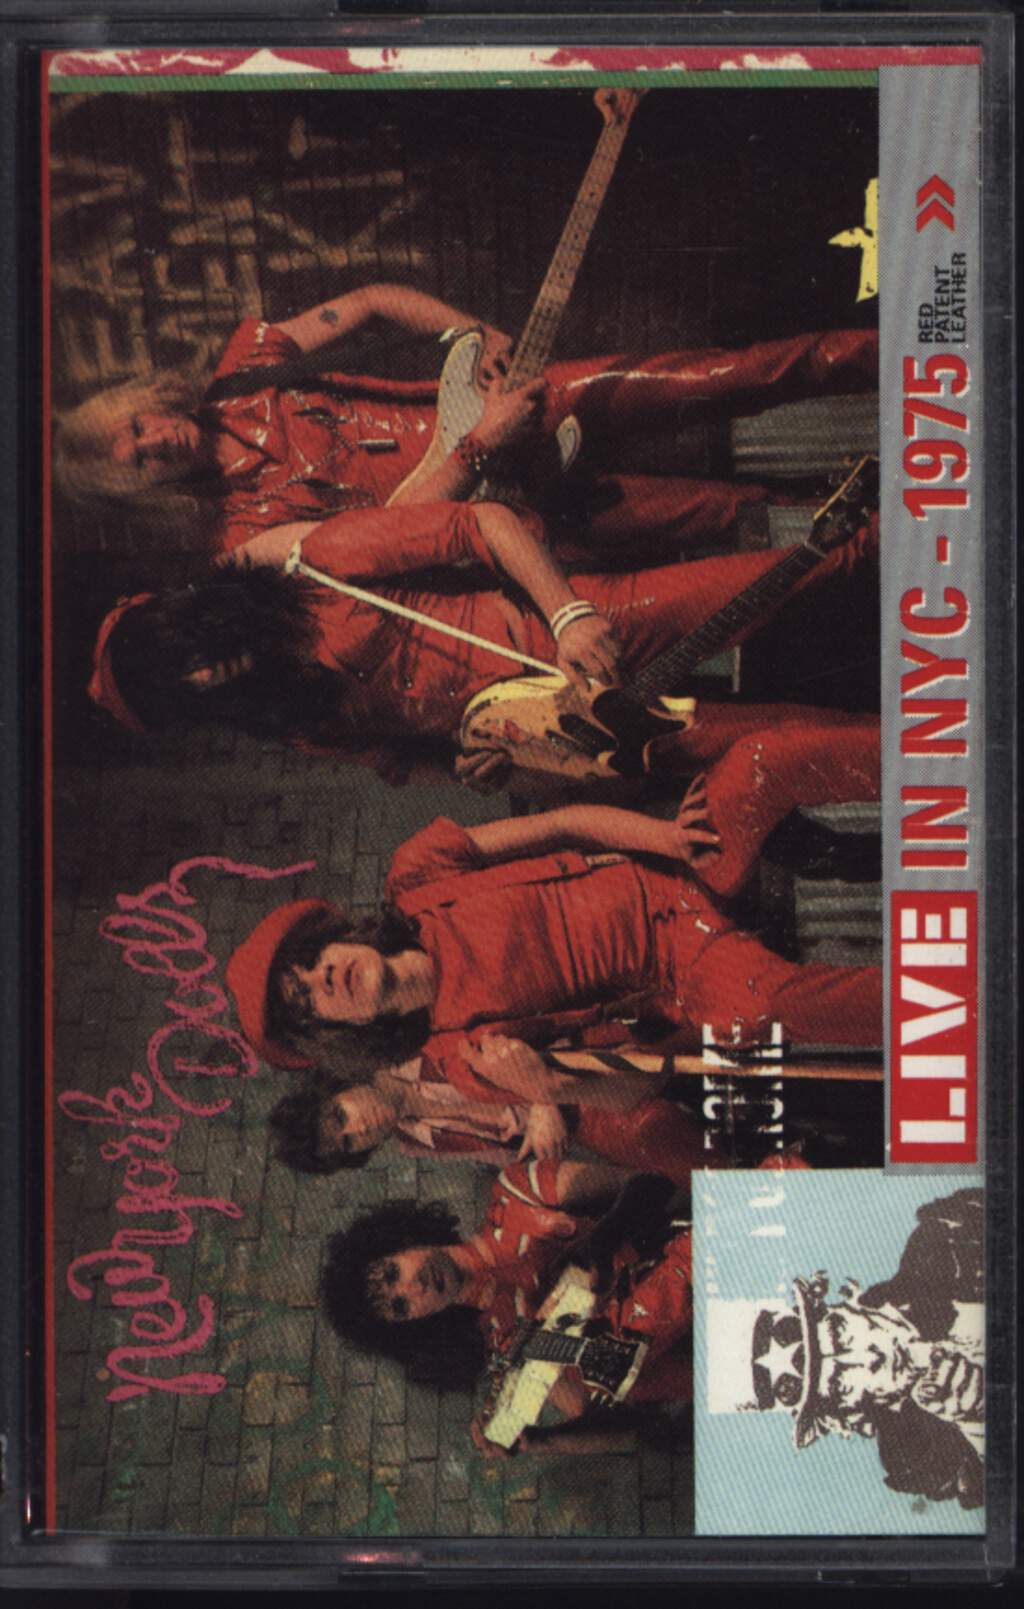 New York Dolls: Live In NYC - 1975 Red Patent Leather, Compact Cassette